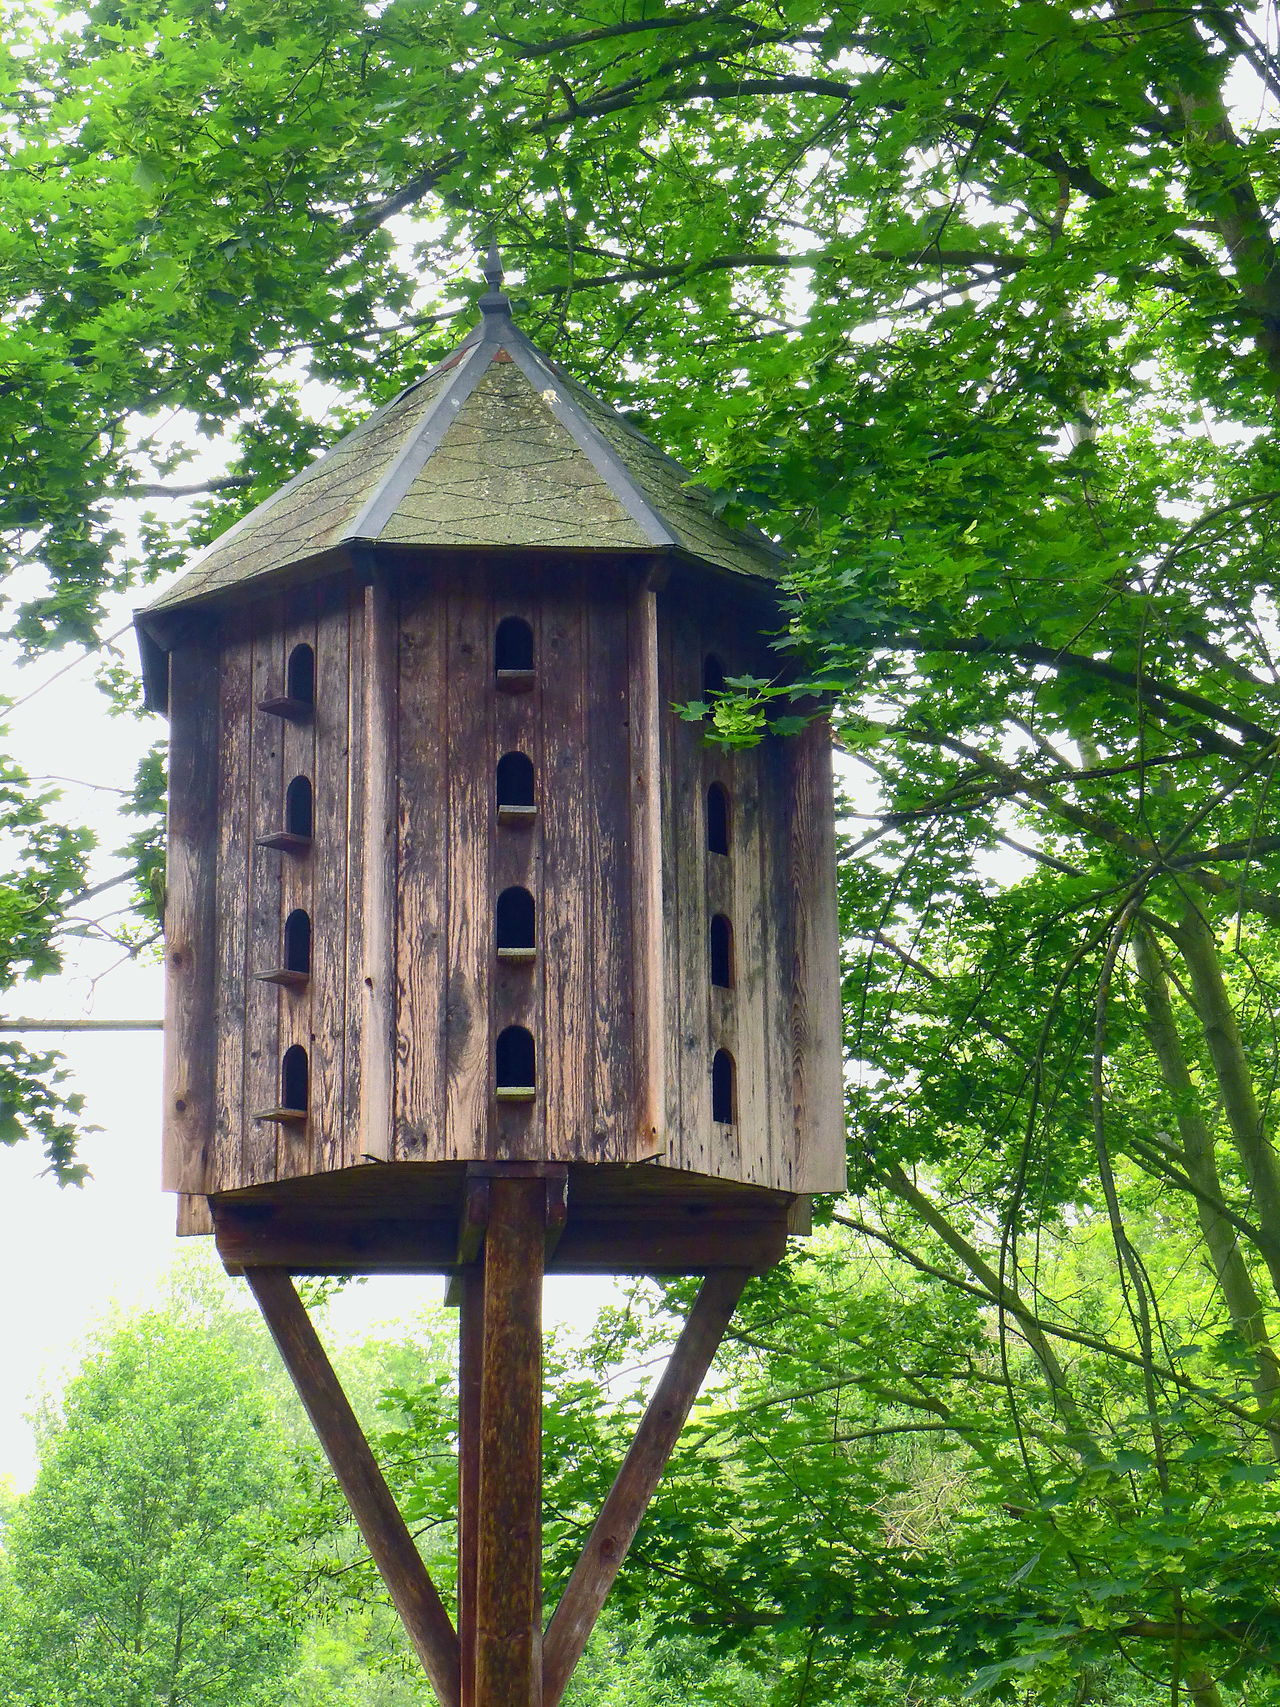 Architecture Built Structure Low Angle View Pigeonry Plant Taubenhaus Tranquility Tree Wood - Material